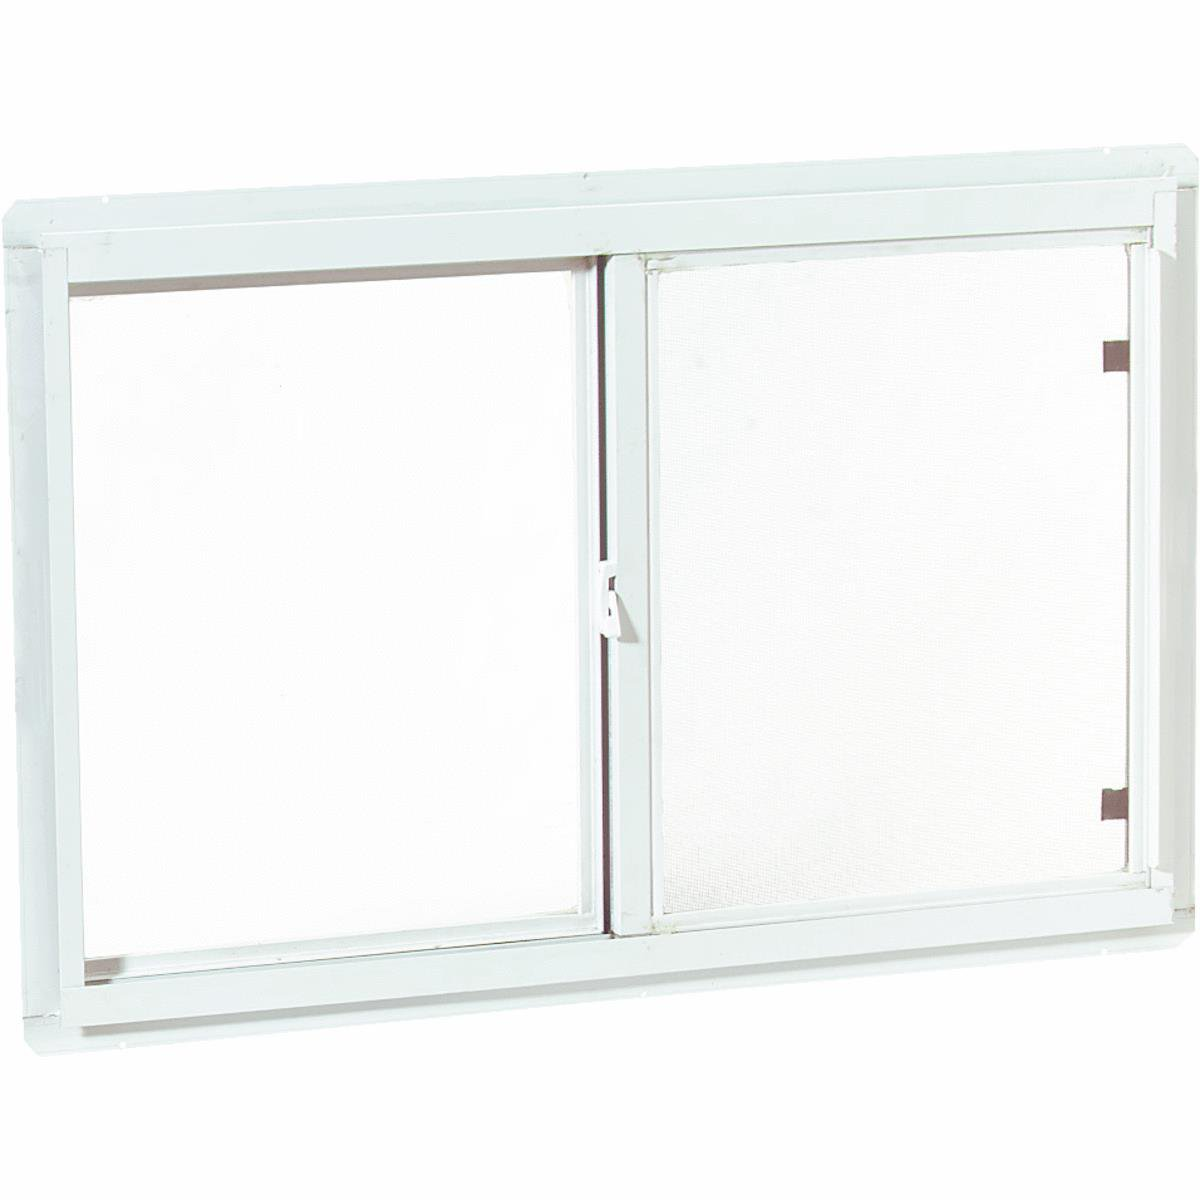 CROFT Series 70 Aluminum Sliding Window With Screen